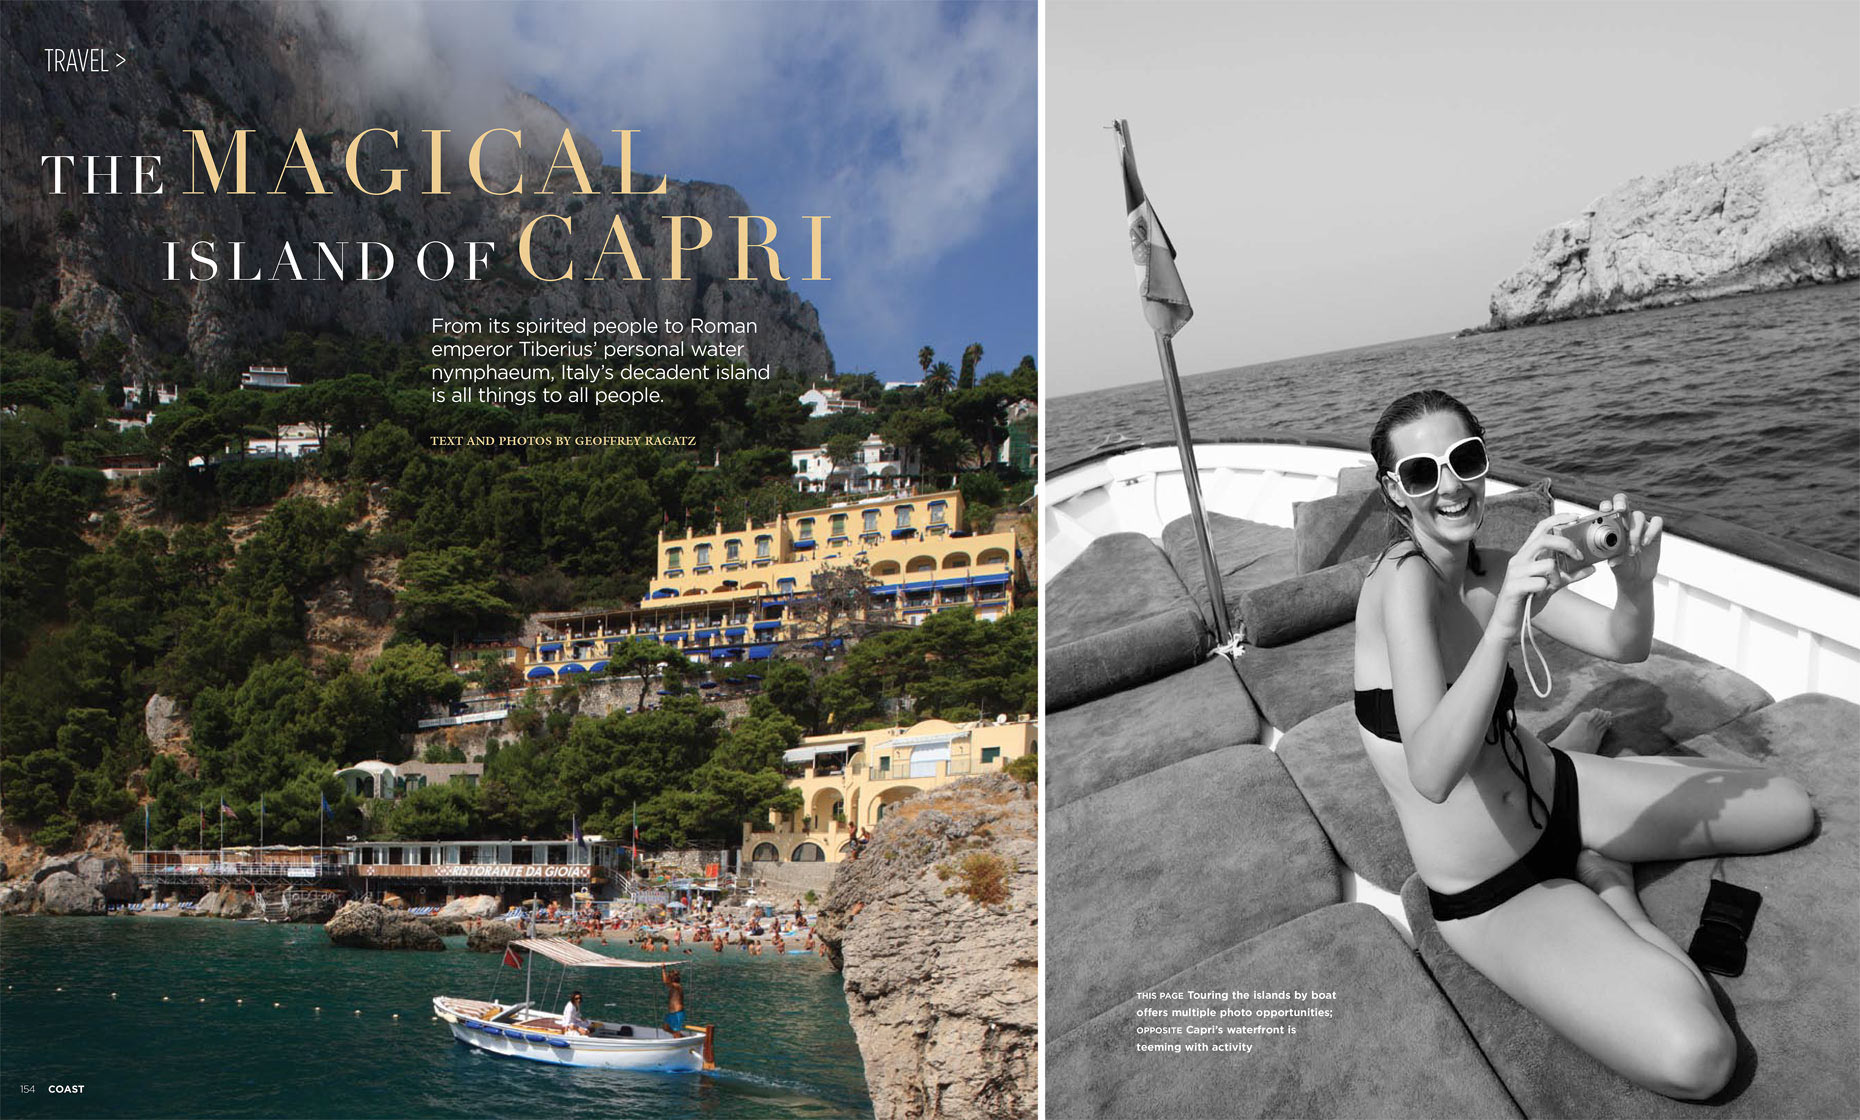 Destination & Editorial Photography | Geoffrey Ragatz Photographer